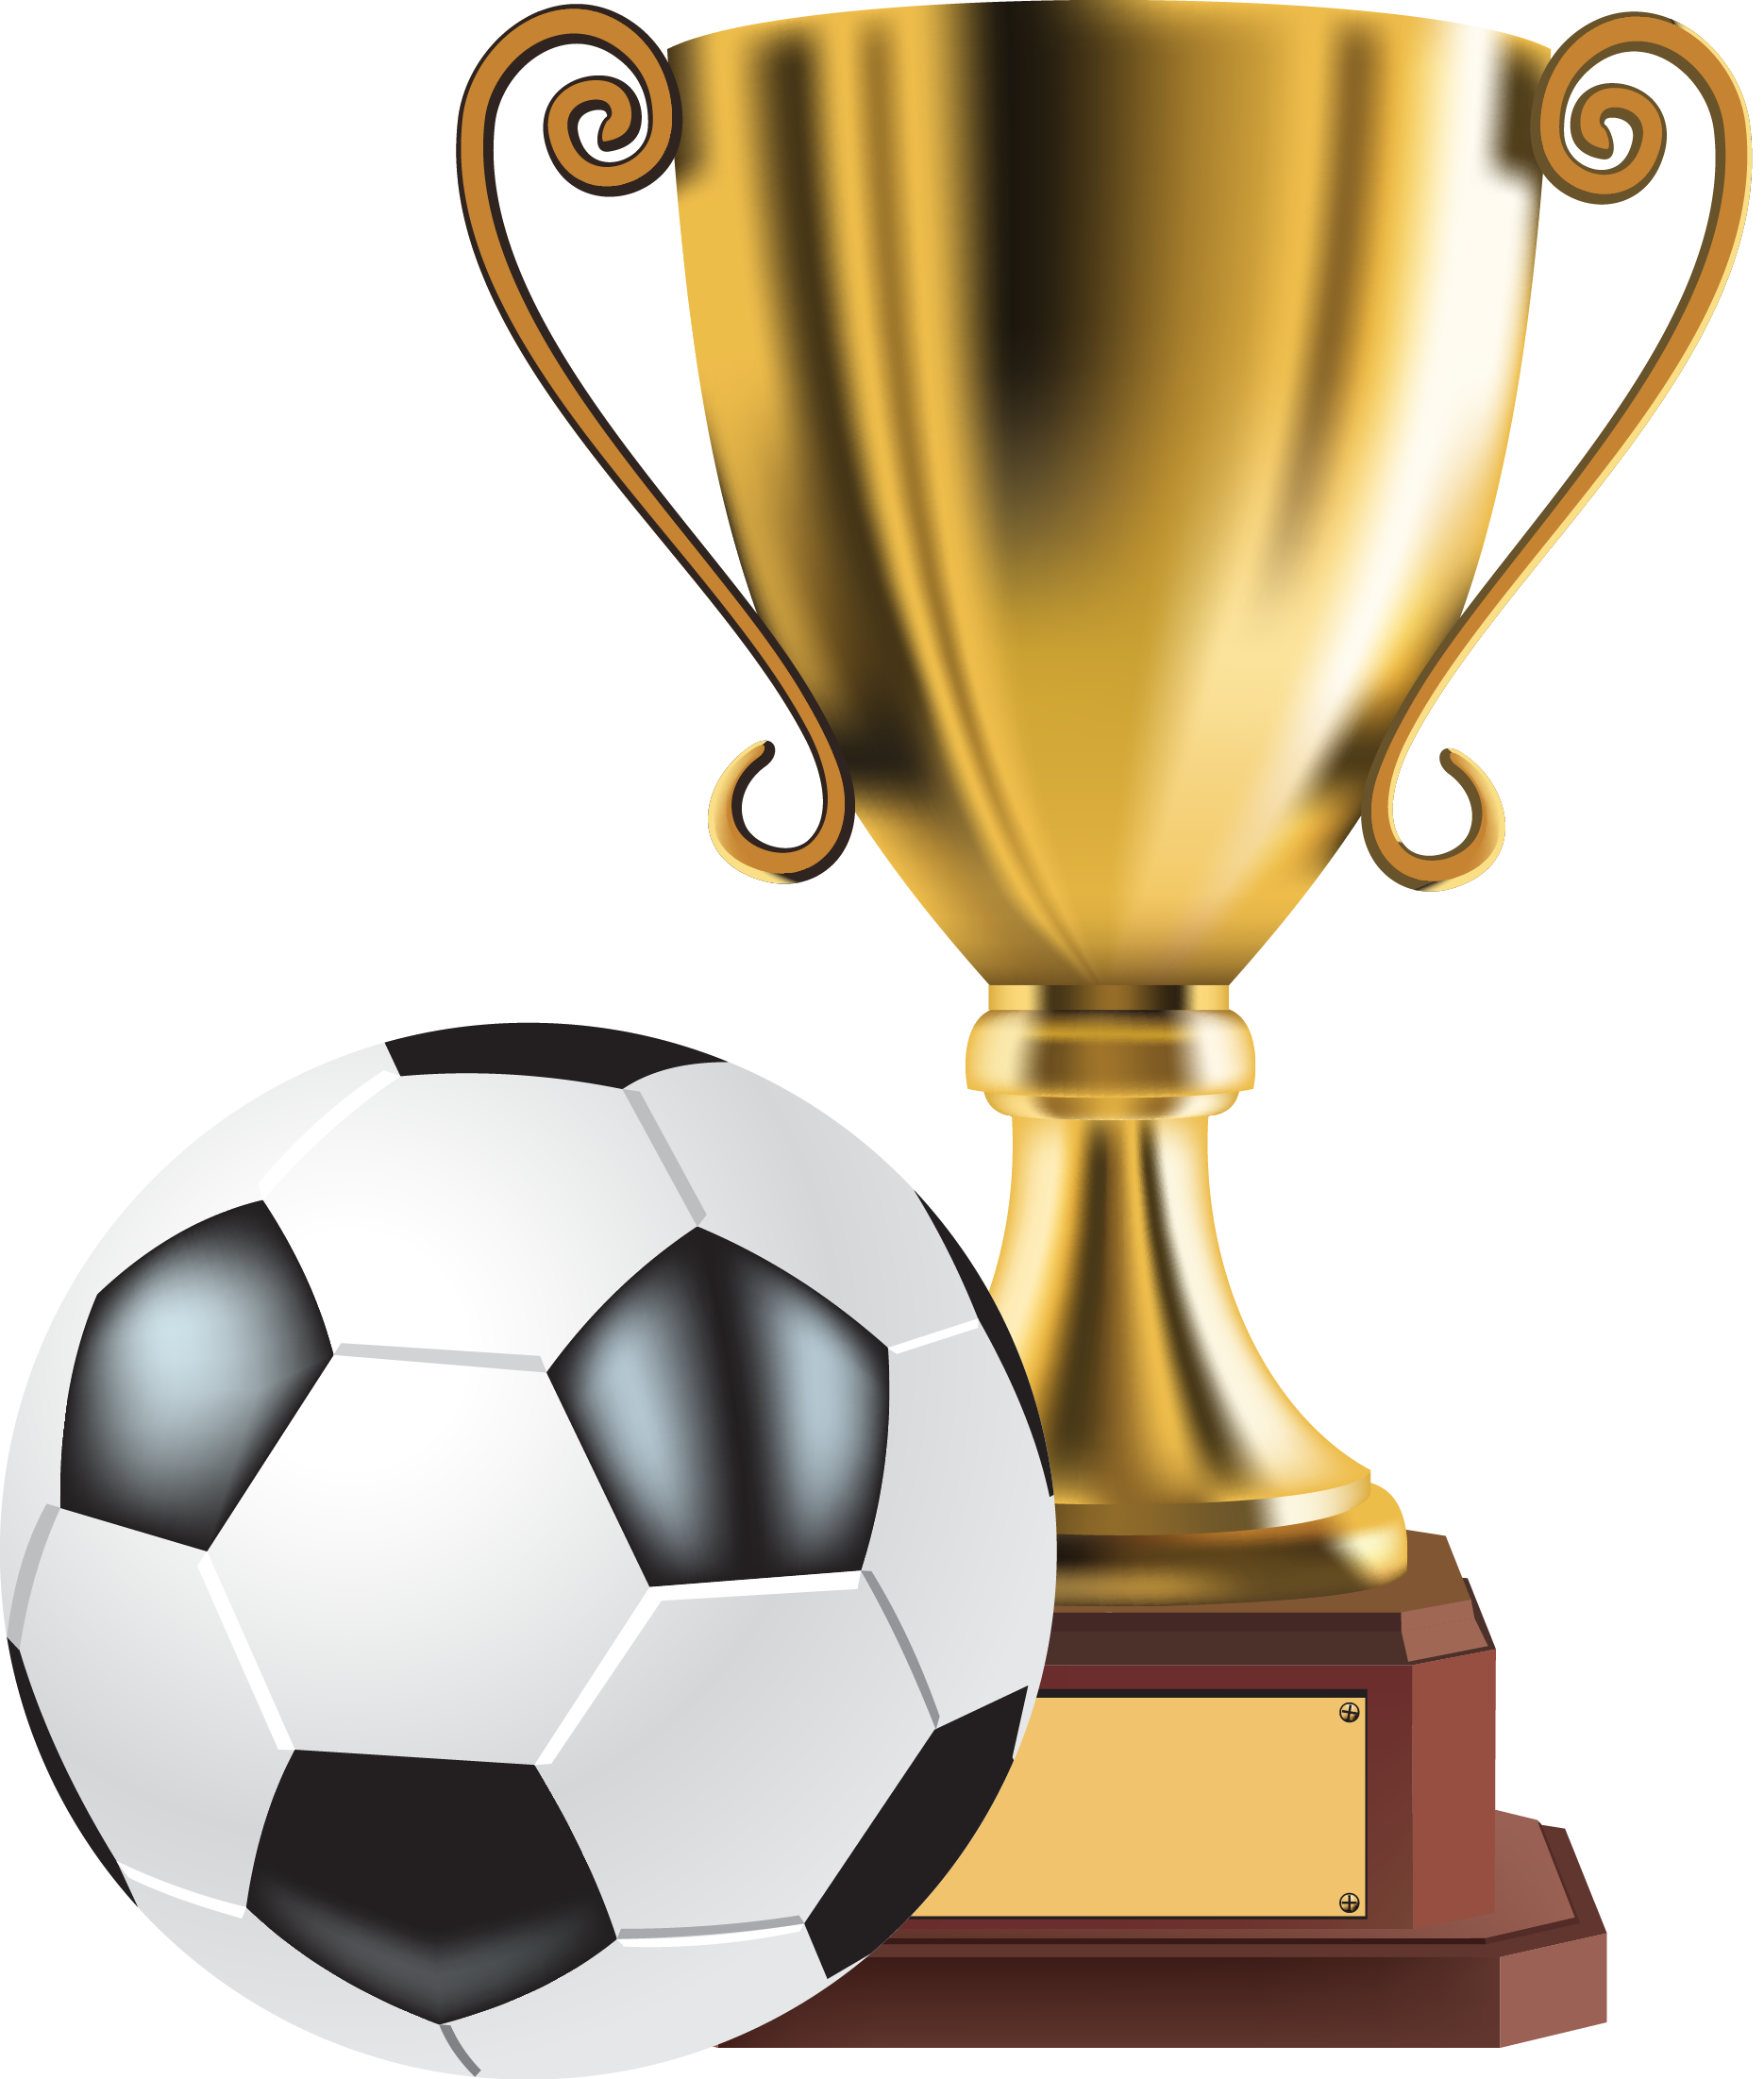 football-trophies-clipart-4.png